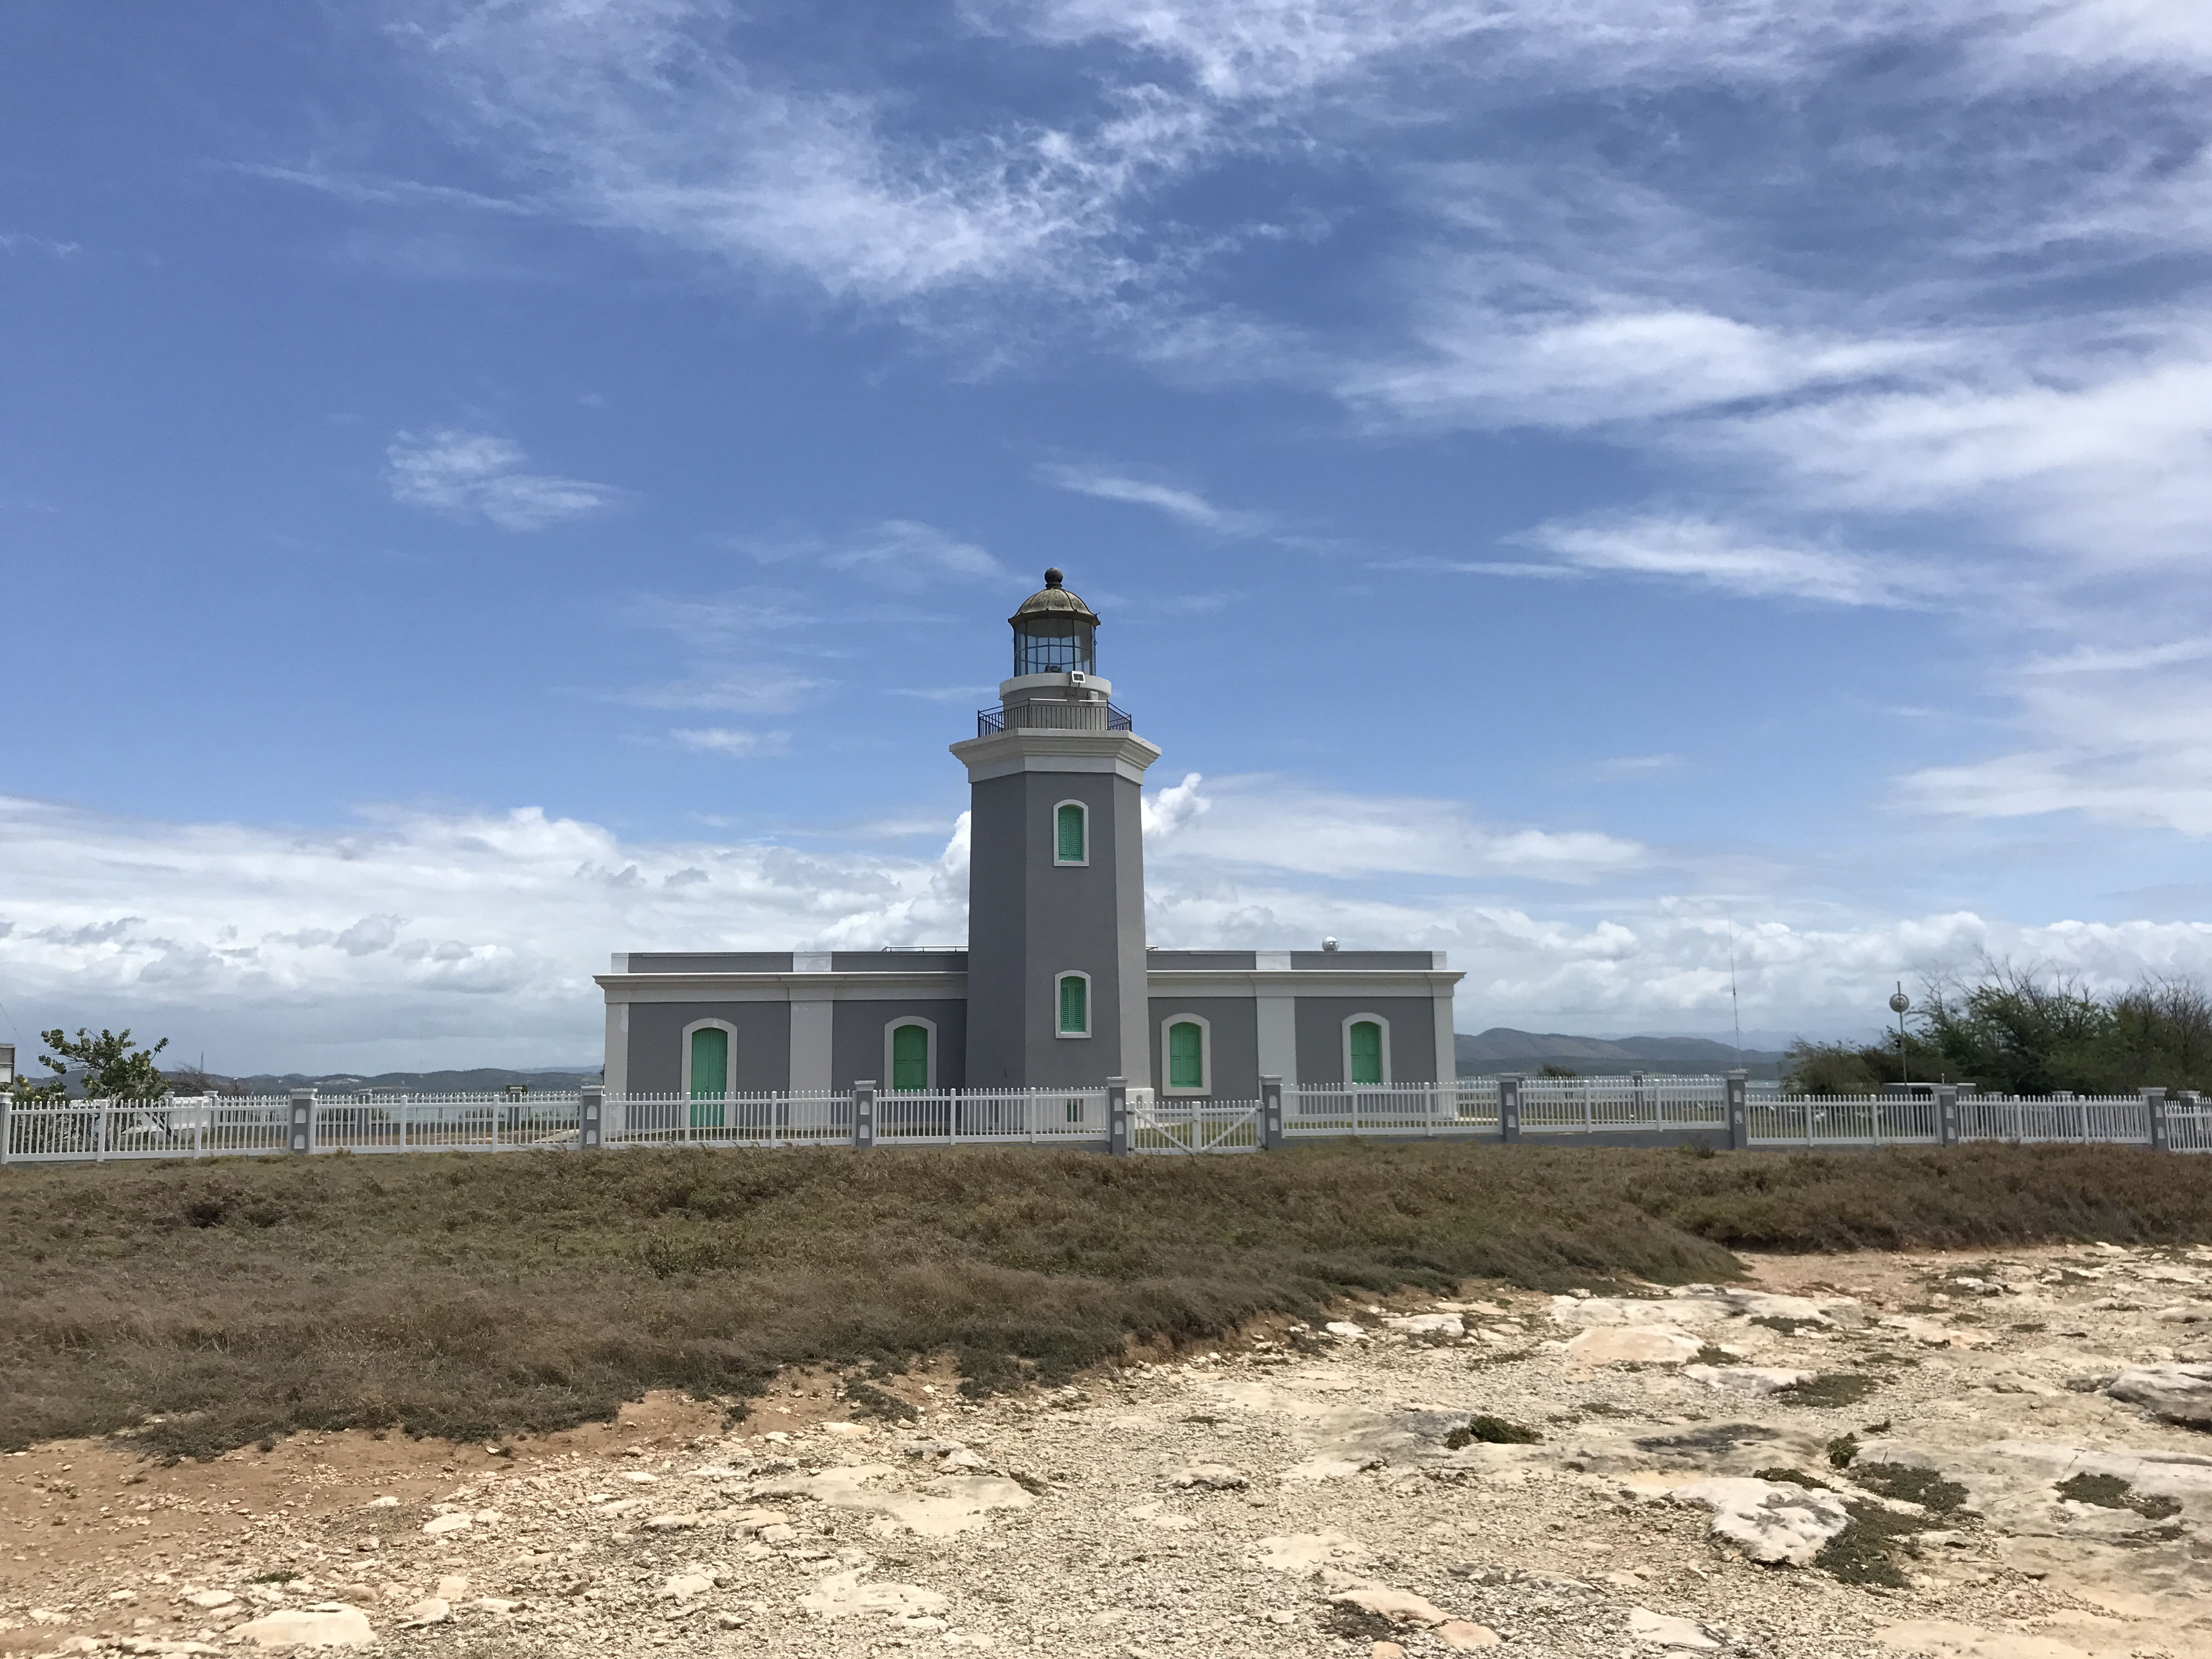 Cabo Rojo - Lighthouse